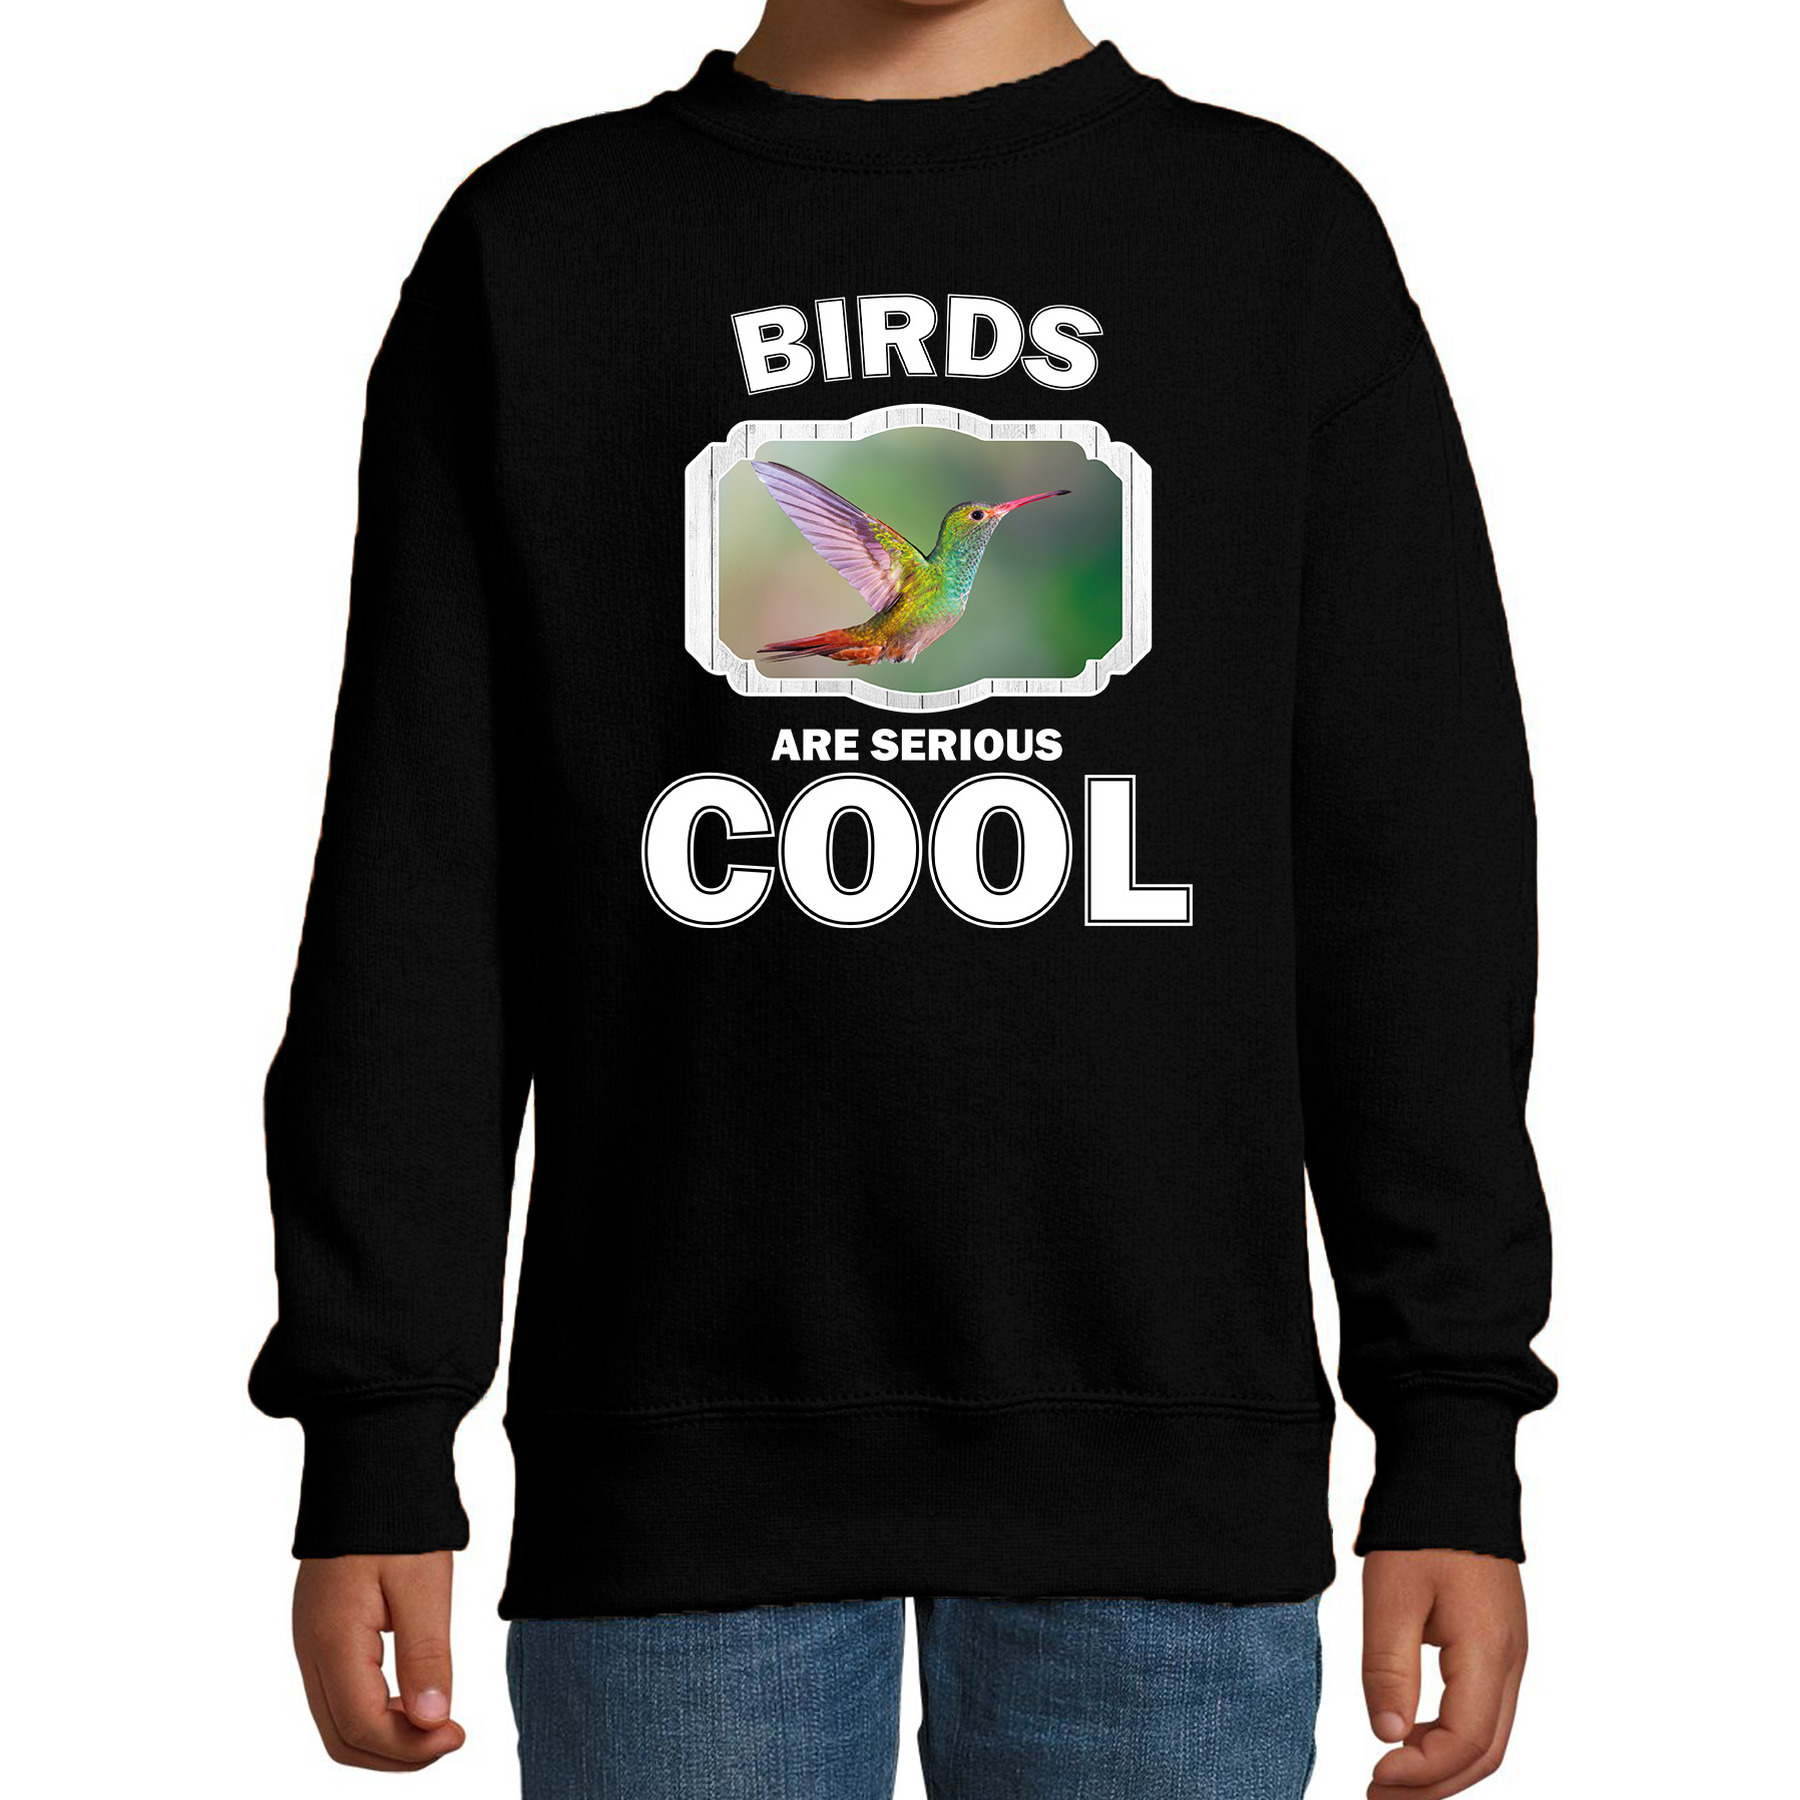 Sweater birds are serious cool zwart kinderen - vogels/ kolibrie vogel trui